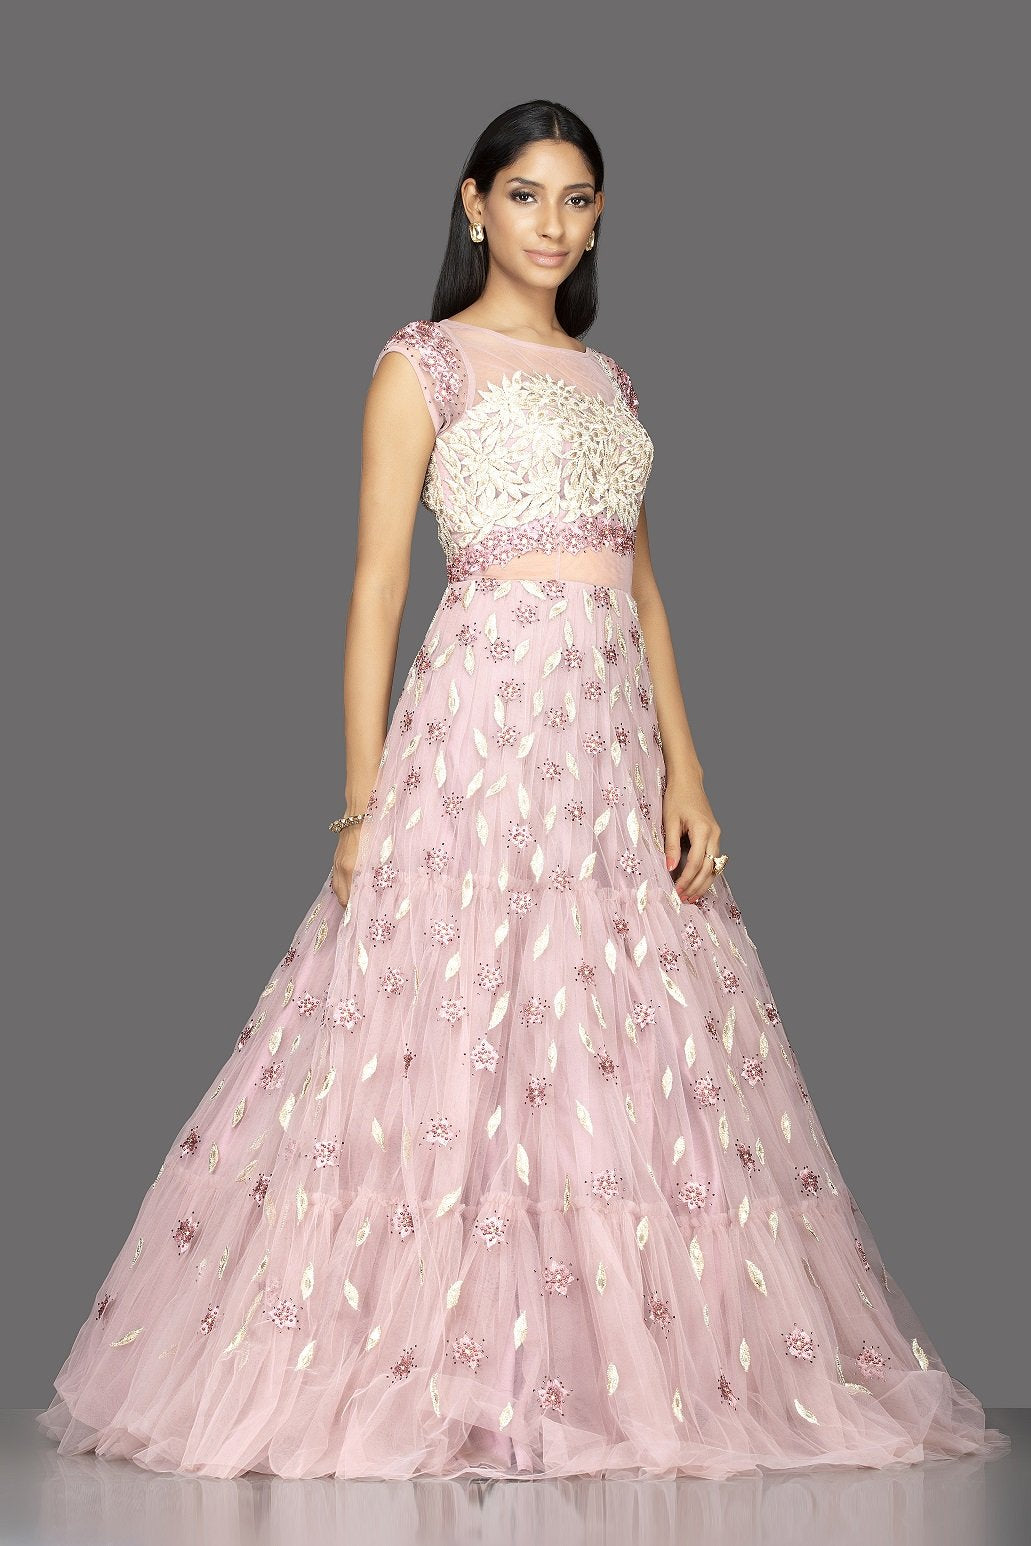 Shop baby pink pearl embroidery designer net gown online in USA. Look radiant on weddings and special occasions in splendid designer Indian dresses, wedding lehengas crafted with finest embroideries and stunning silhouettes from Pure Elegance Indian fashion boutique in USA.-side